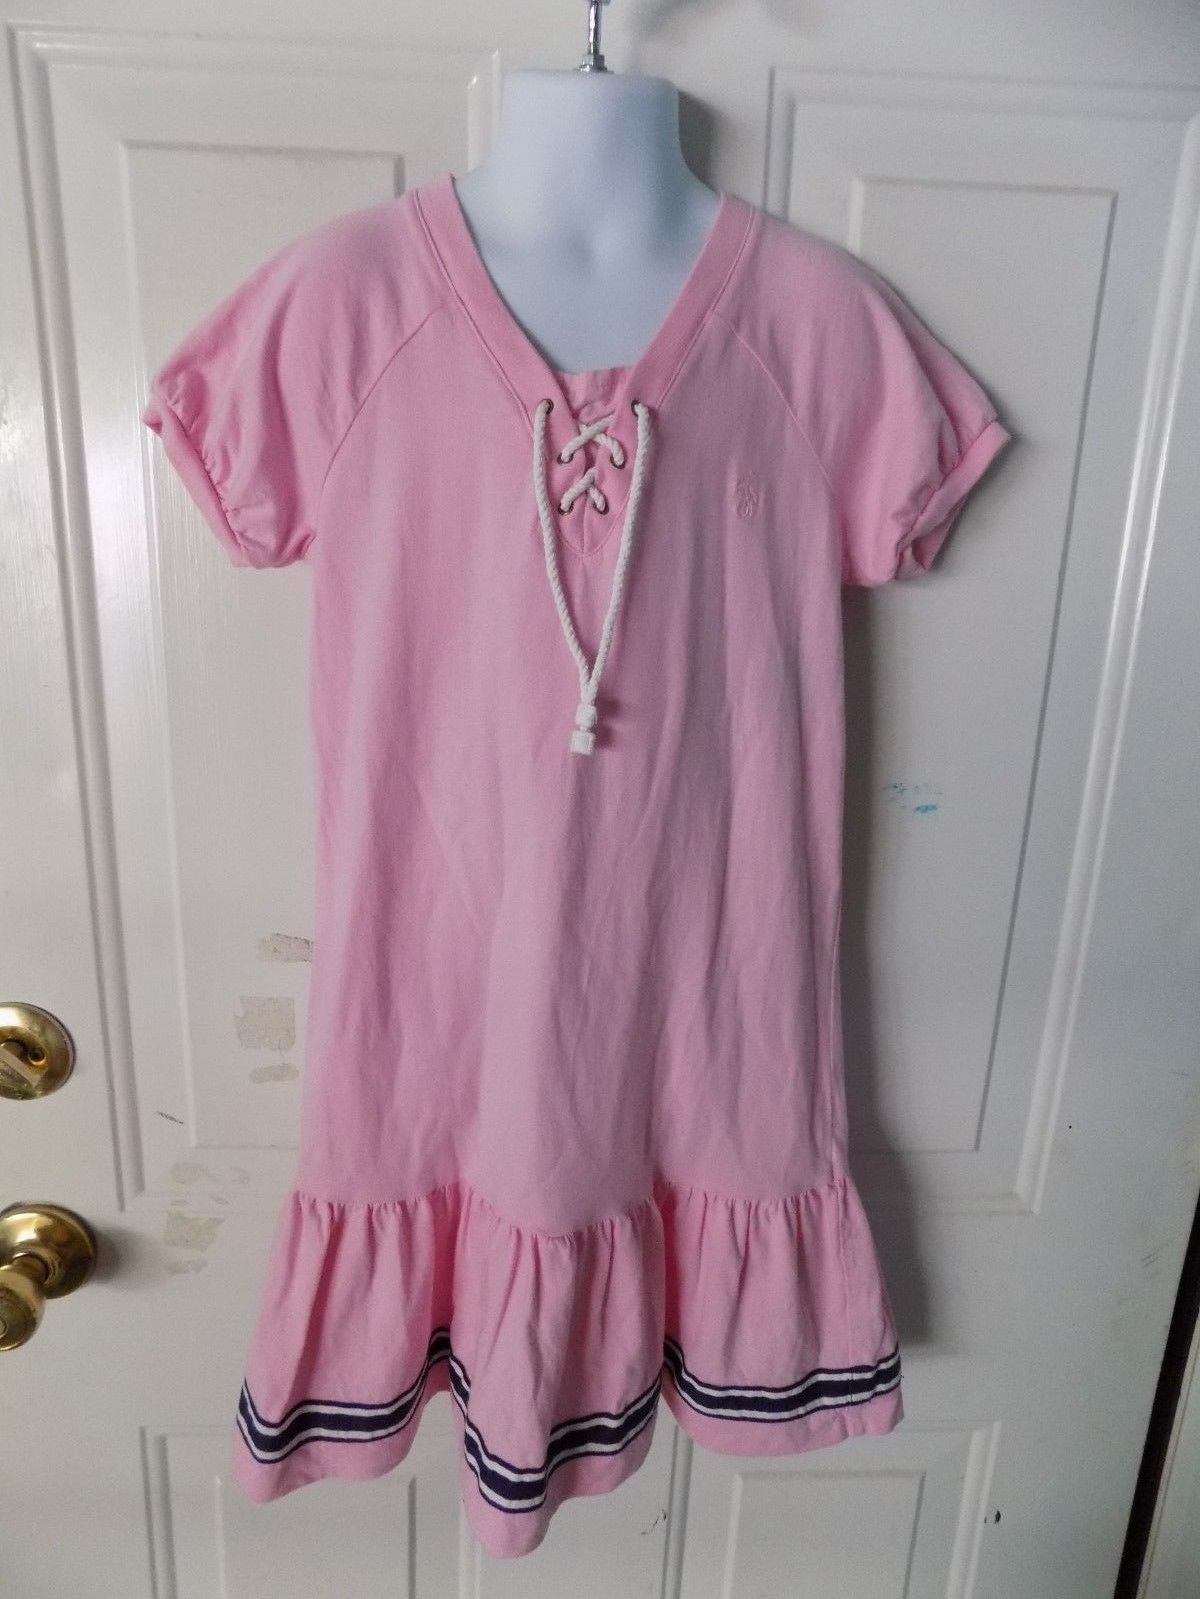 Primary image for Ralph Lauren Pink/White/Blue Lace Tie Short Sleeve Dress Size 6X Girl's EUC HTF